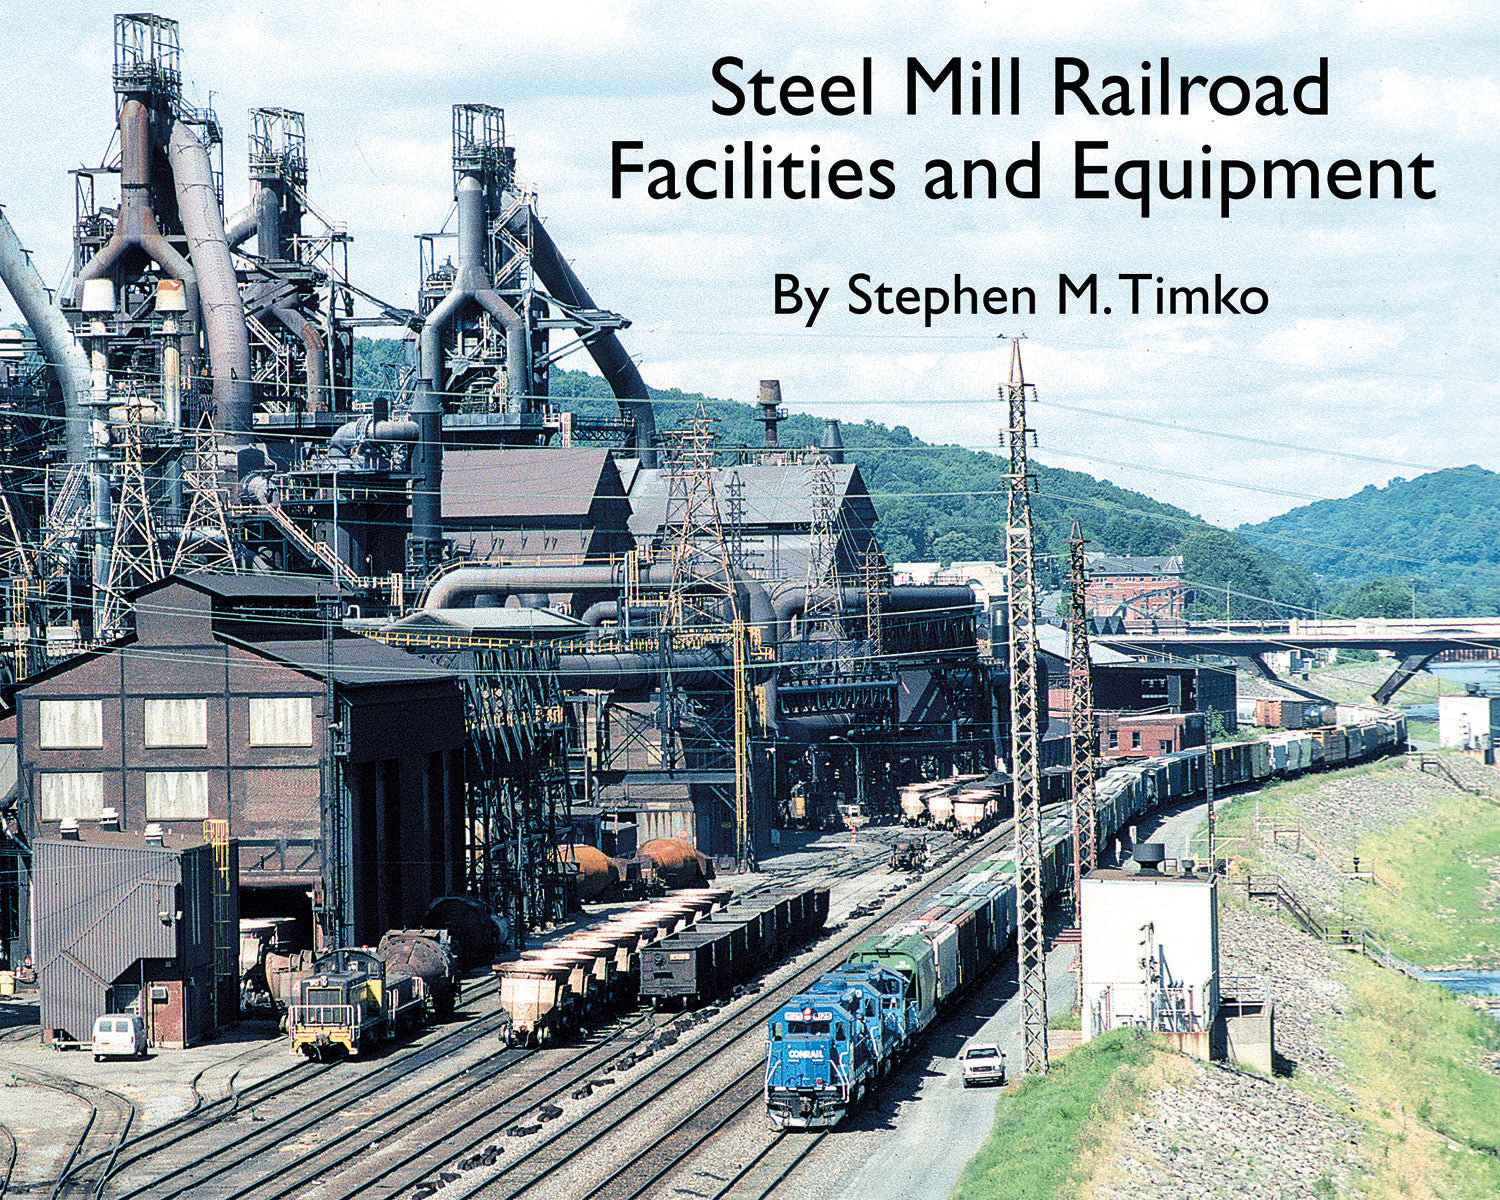 Steel Mill Railroad Facilities and Equipment (Softcover)